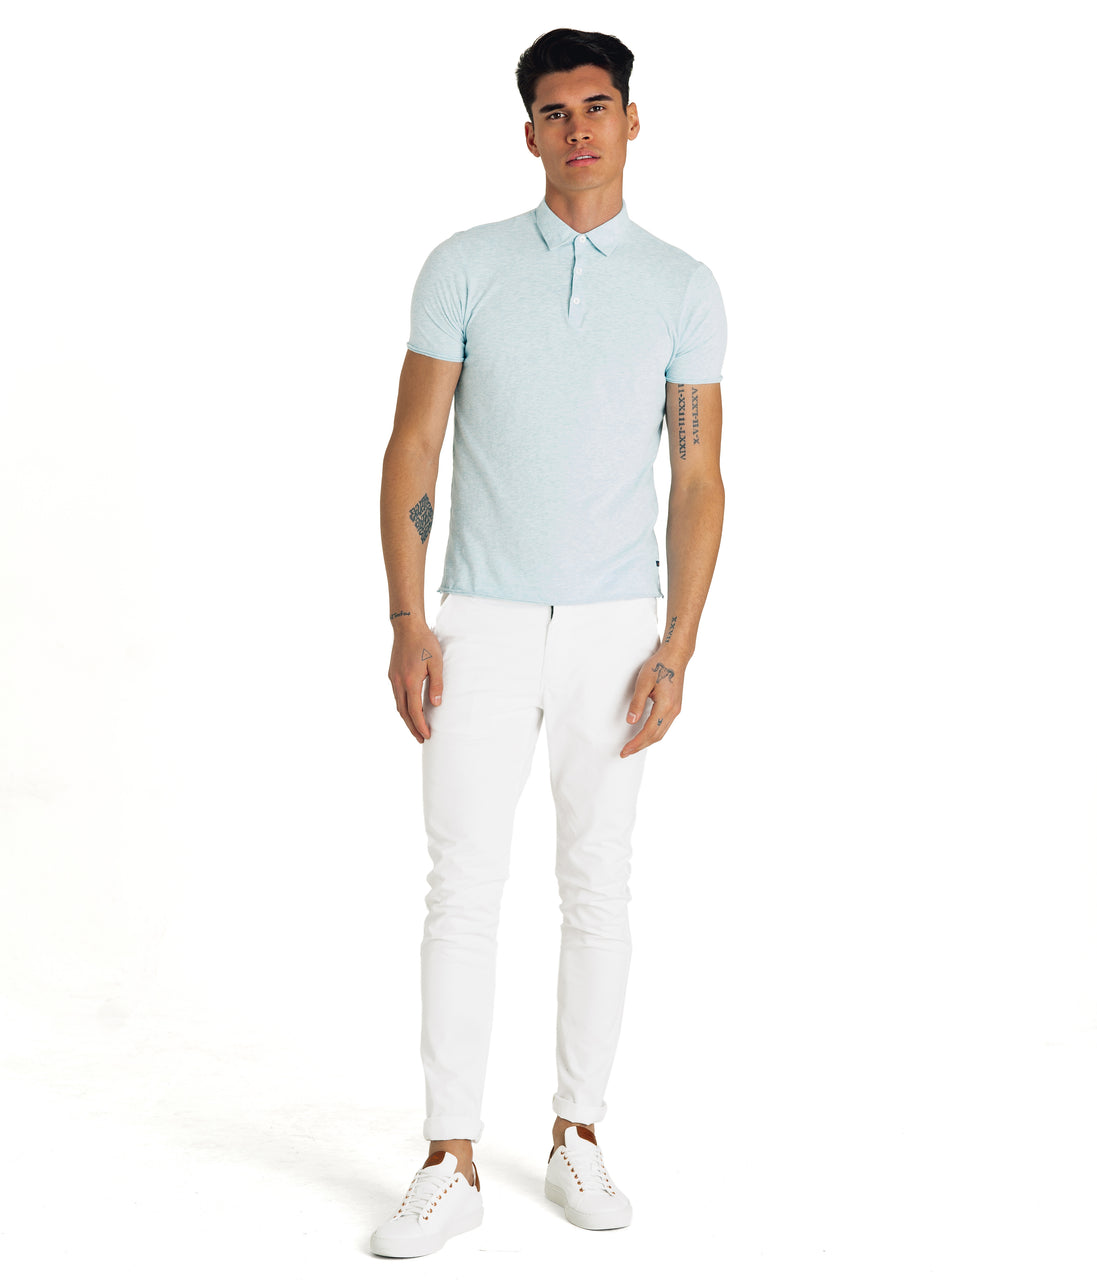 Heather Soft Jersey Polo - Aqua Heather - Good Man Brand - Heather Soft Jersey Polo - Aqua Heather